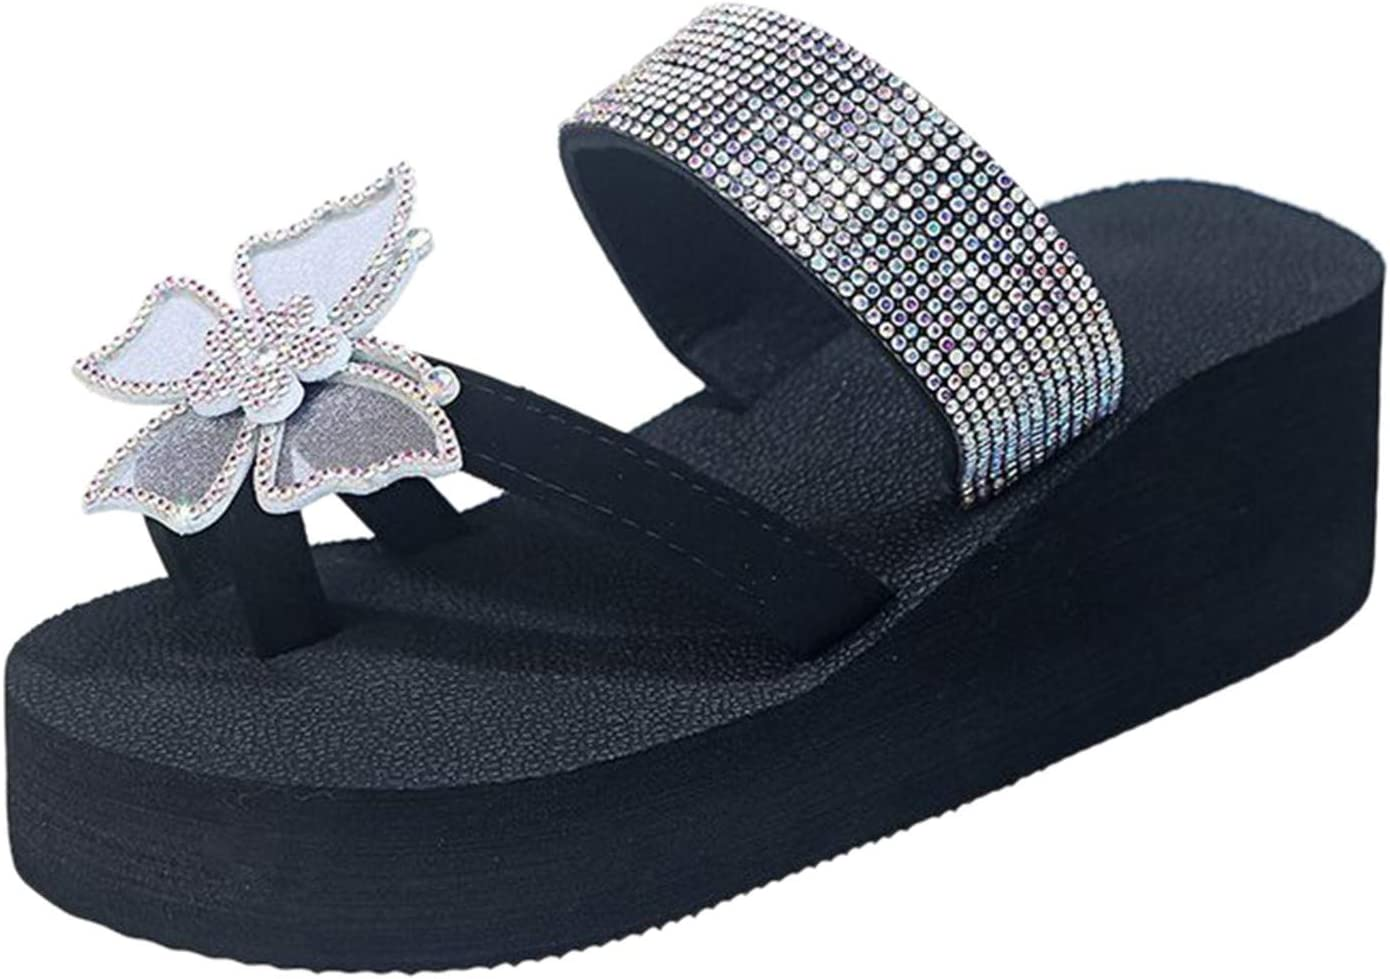 Fullwei Sandals for Ranking TOP8 Women Casual Bunion Wedge Large-scale sale Rhinestone S